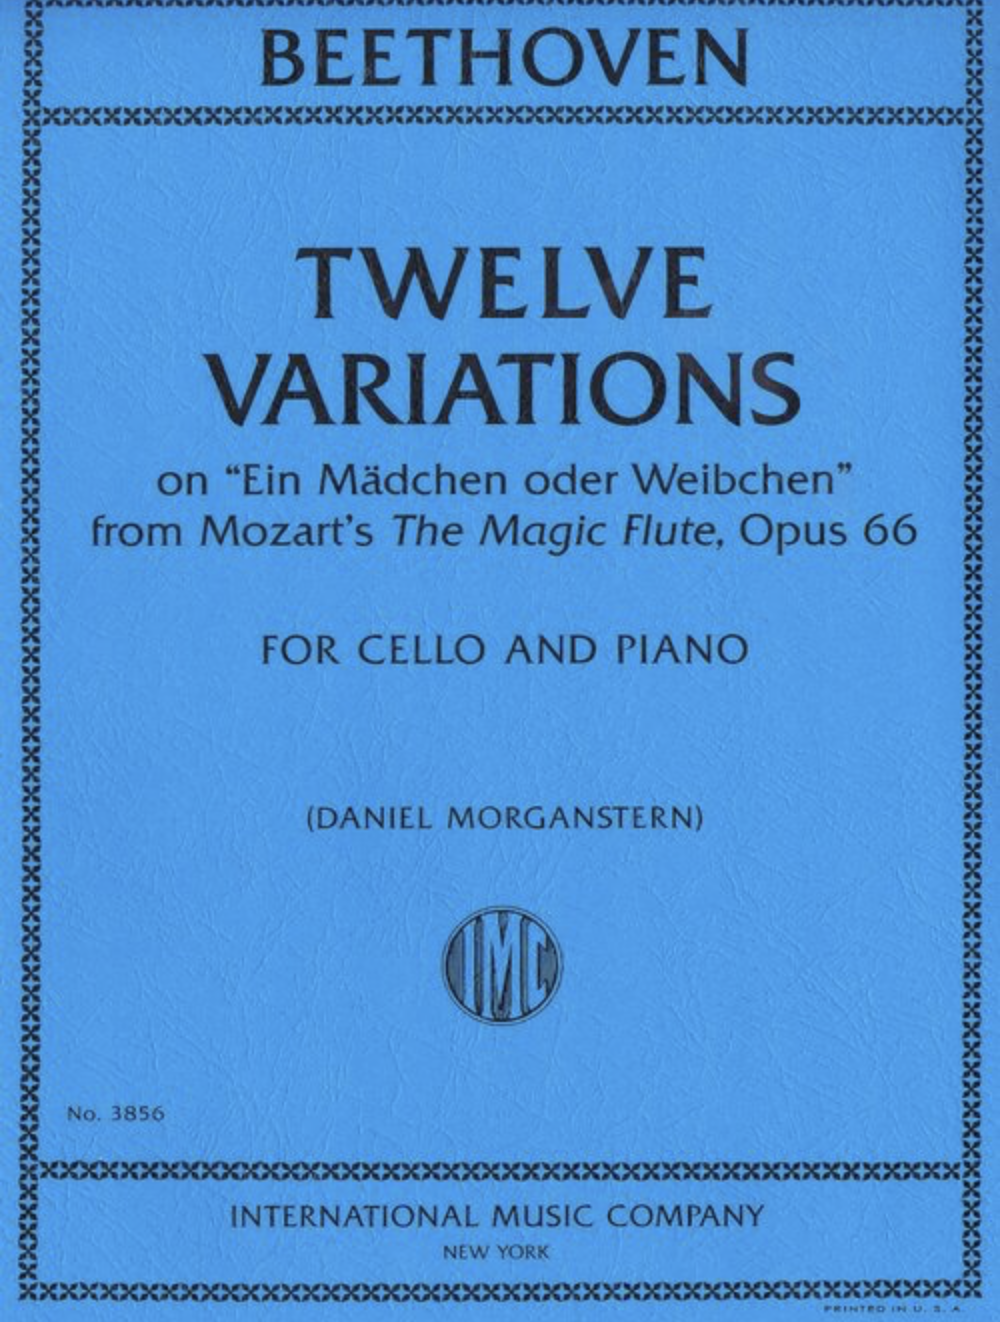 """International Music Company Beethoven (Morganstern): Twelve Variations on """"Ein Madchen oder Weibchen"""" from Mozart's """"The Magic Flute"""", Op. 66 (cello and piano) IMC"""